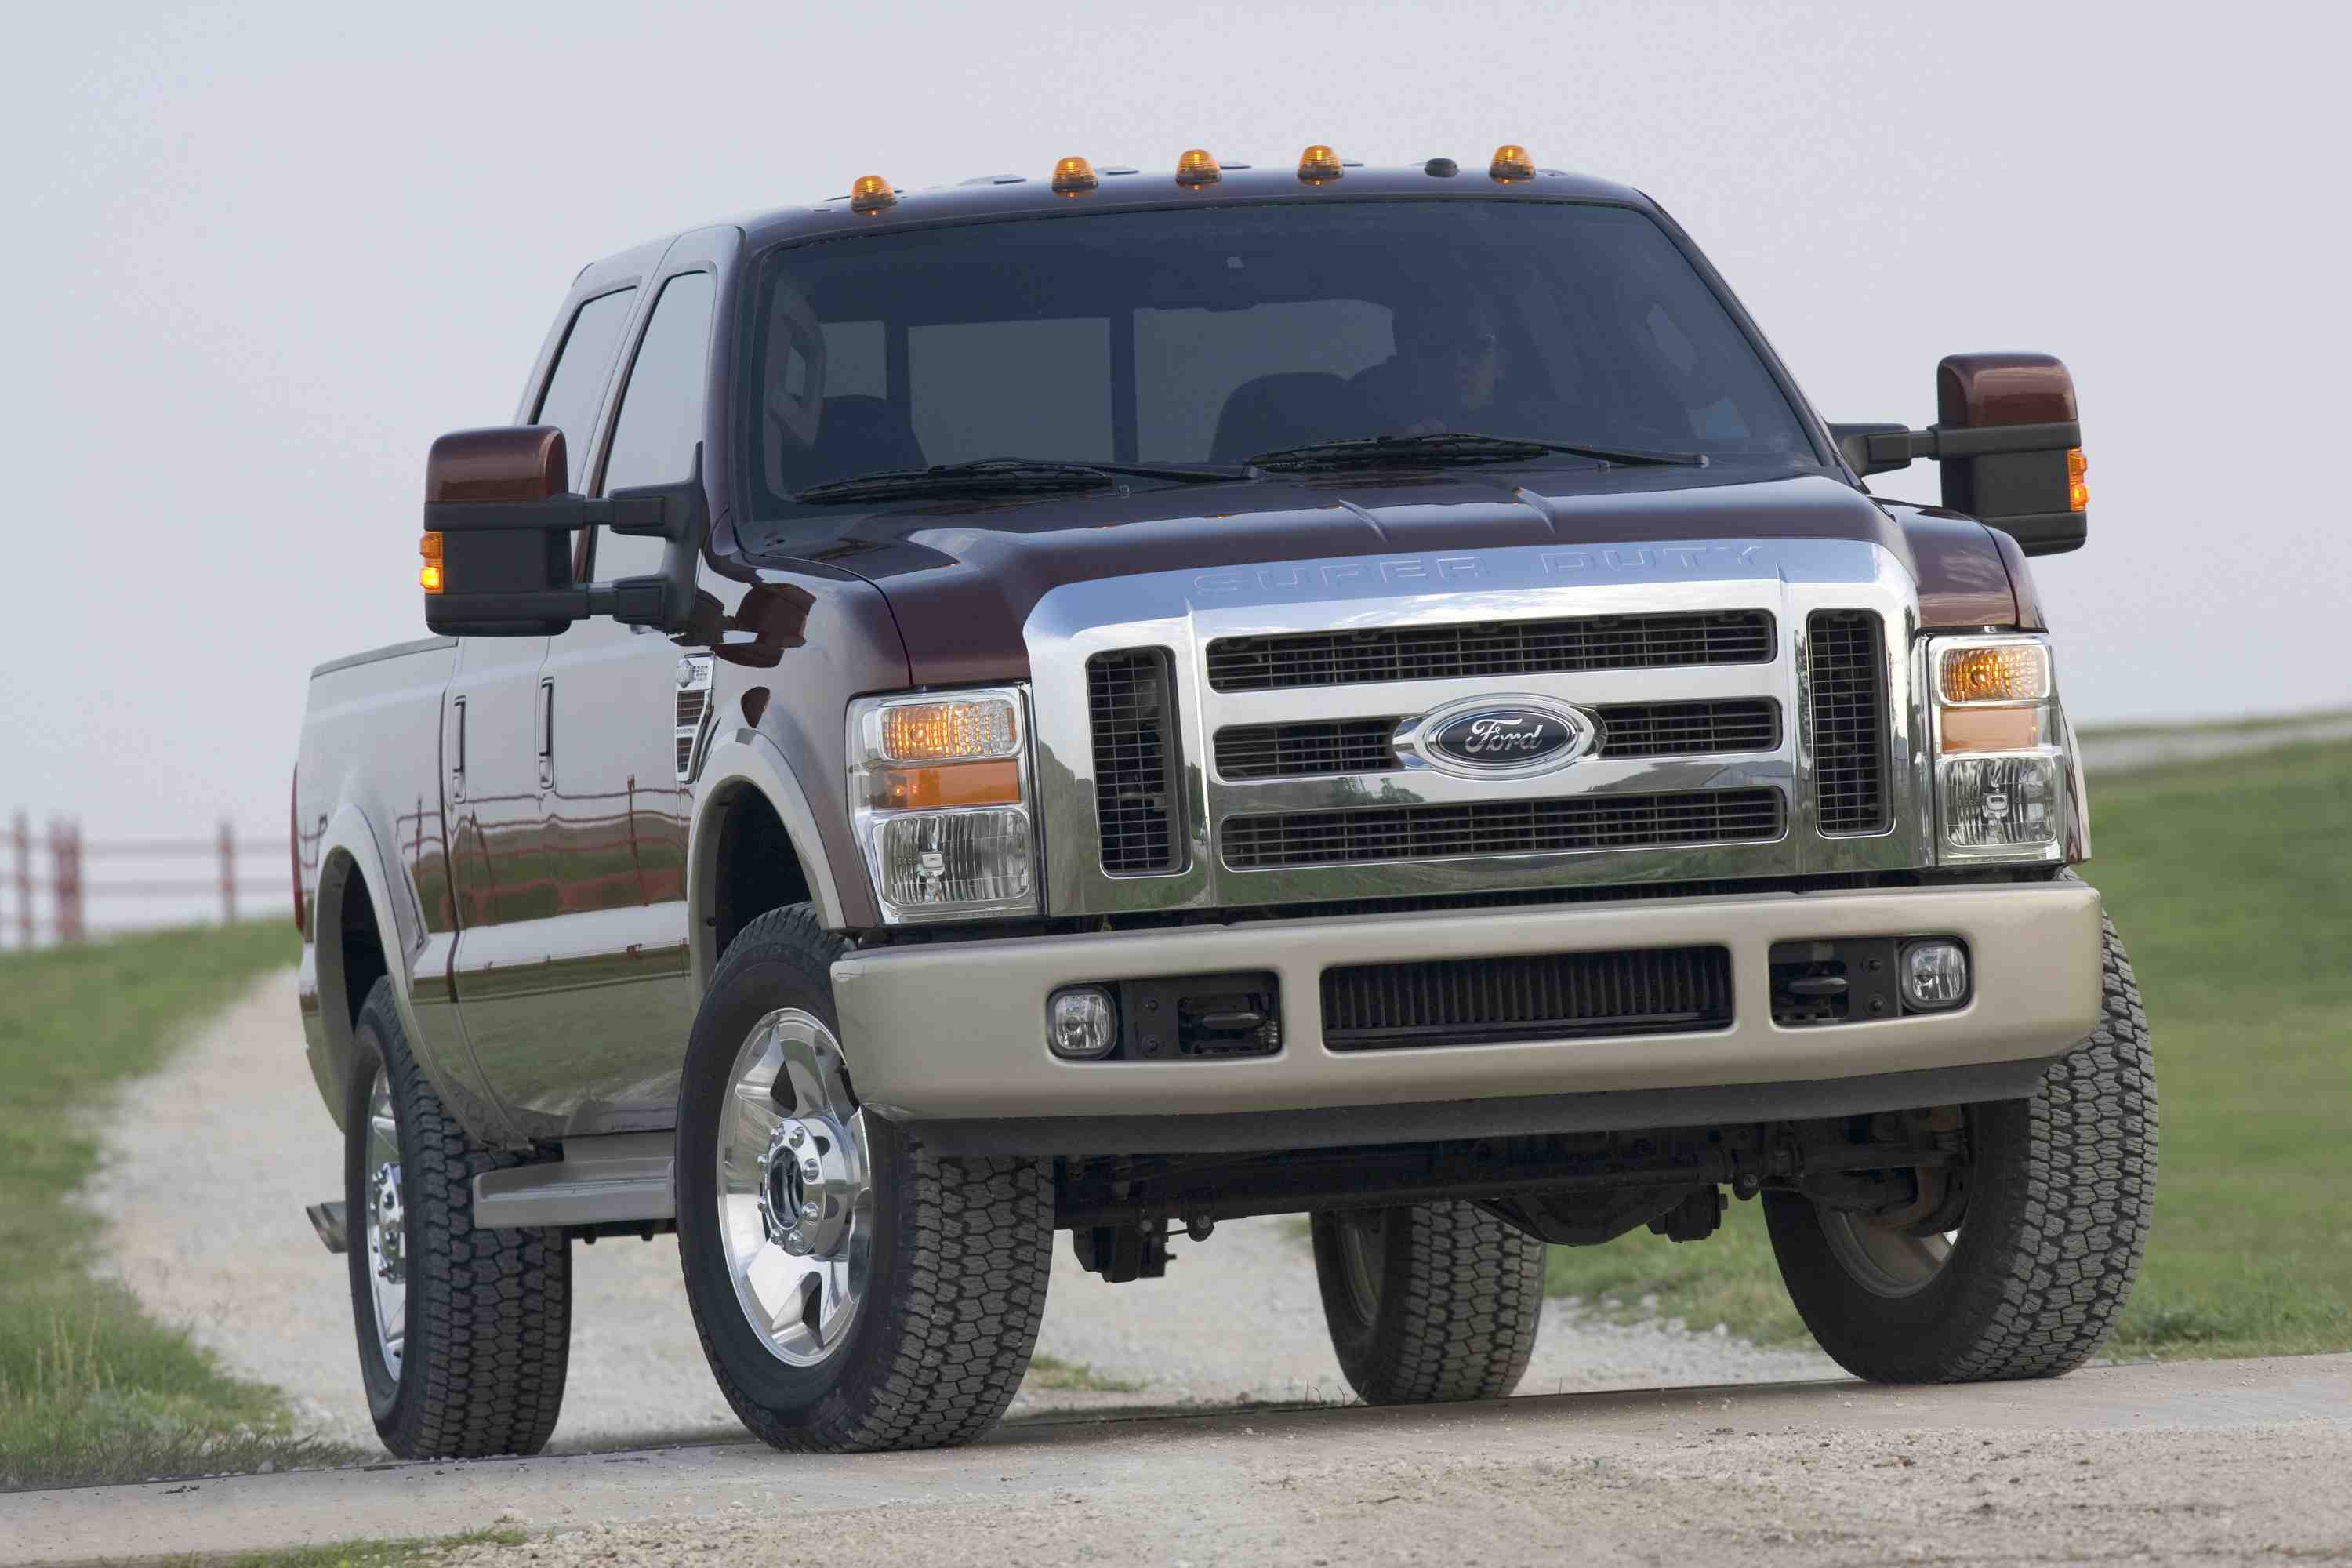 2008 ford f 250 super duty the 2008 ford f series super dutys bold new design visually emphasizes super dutys increased capability